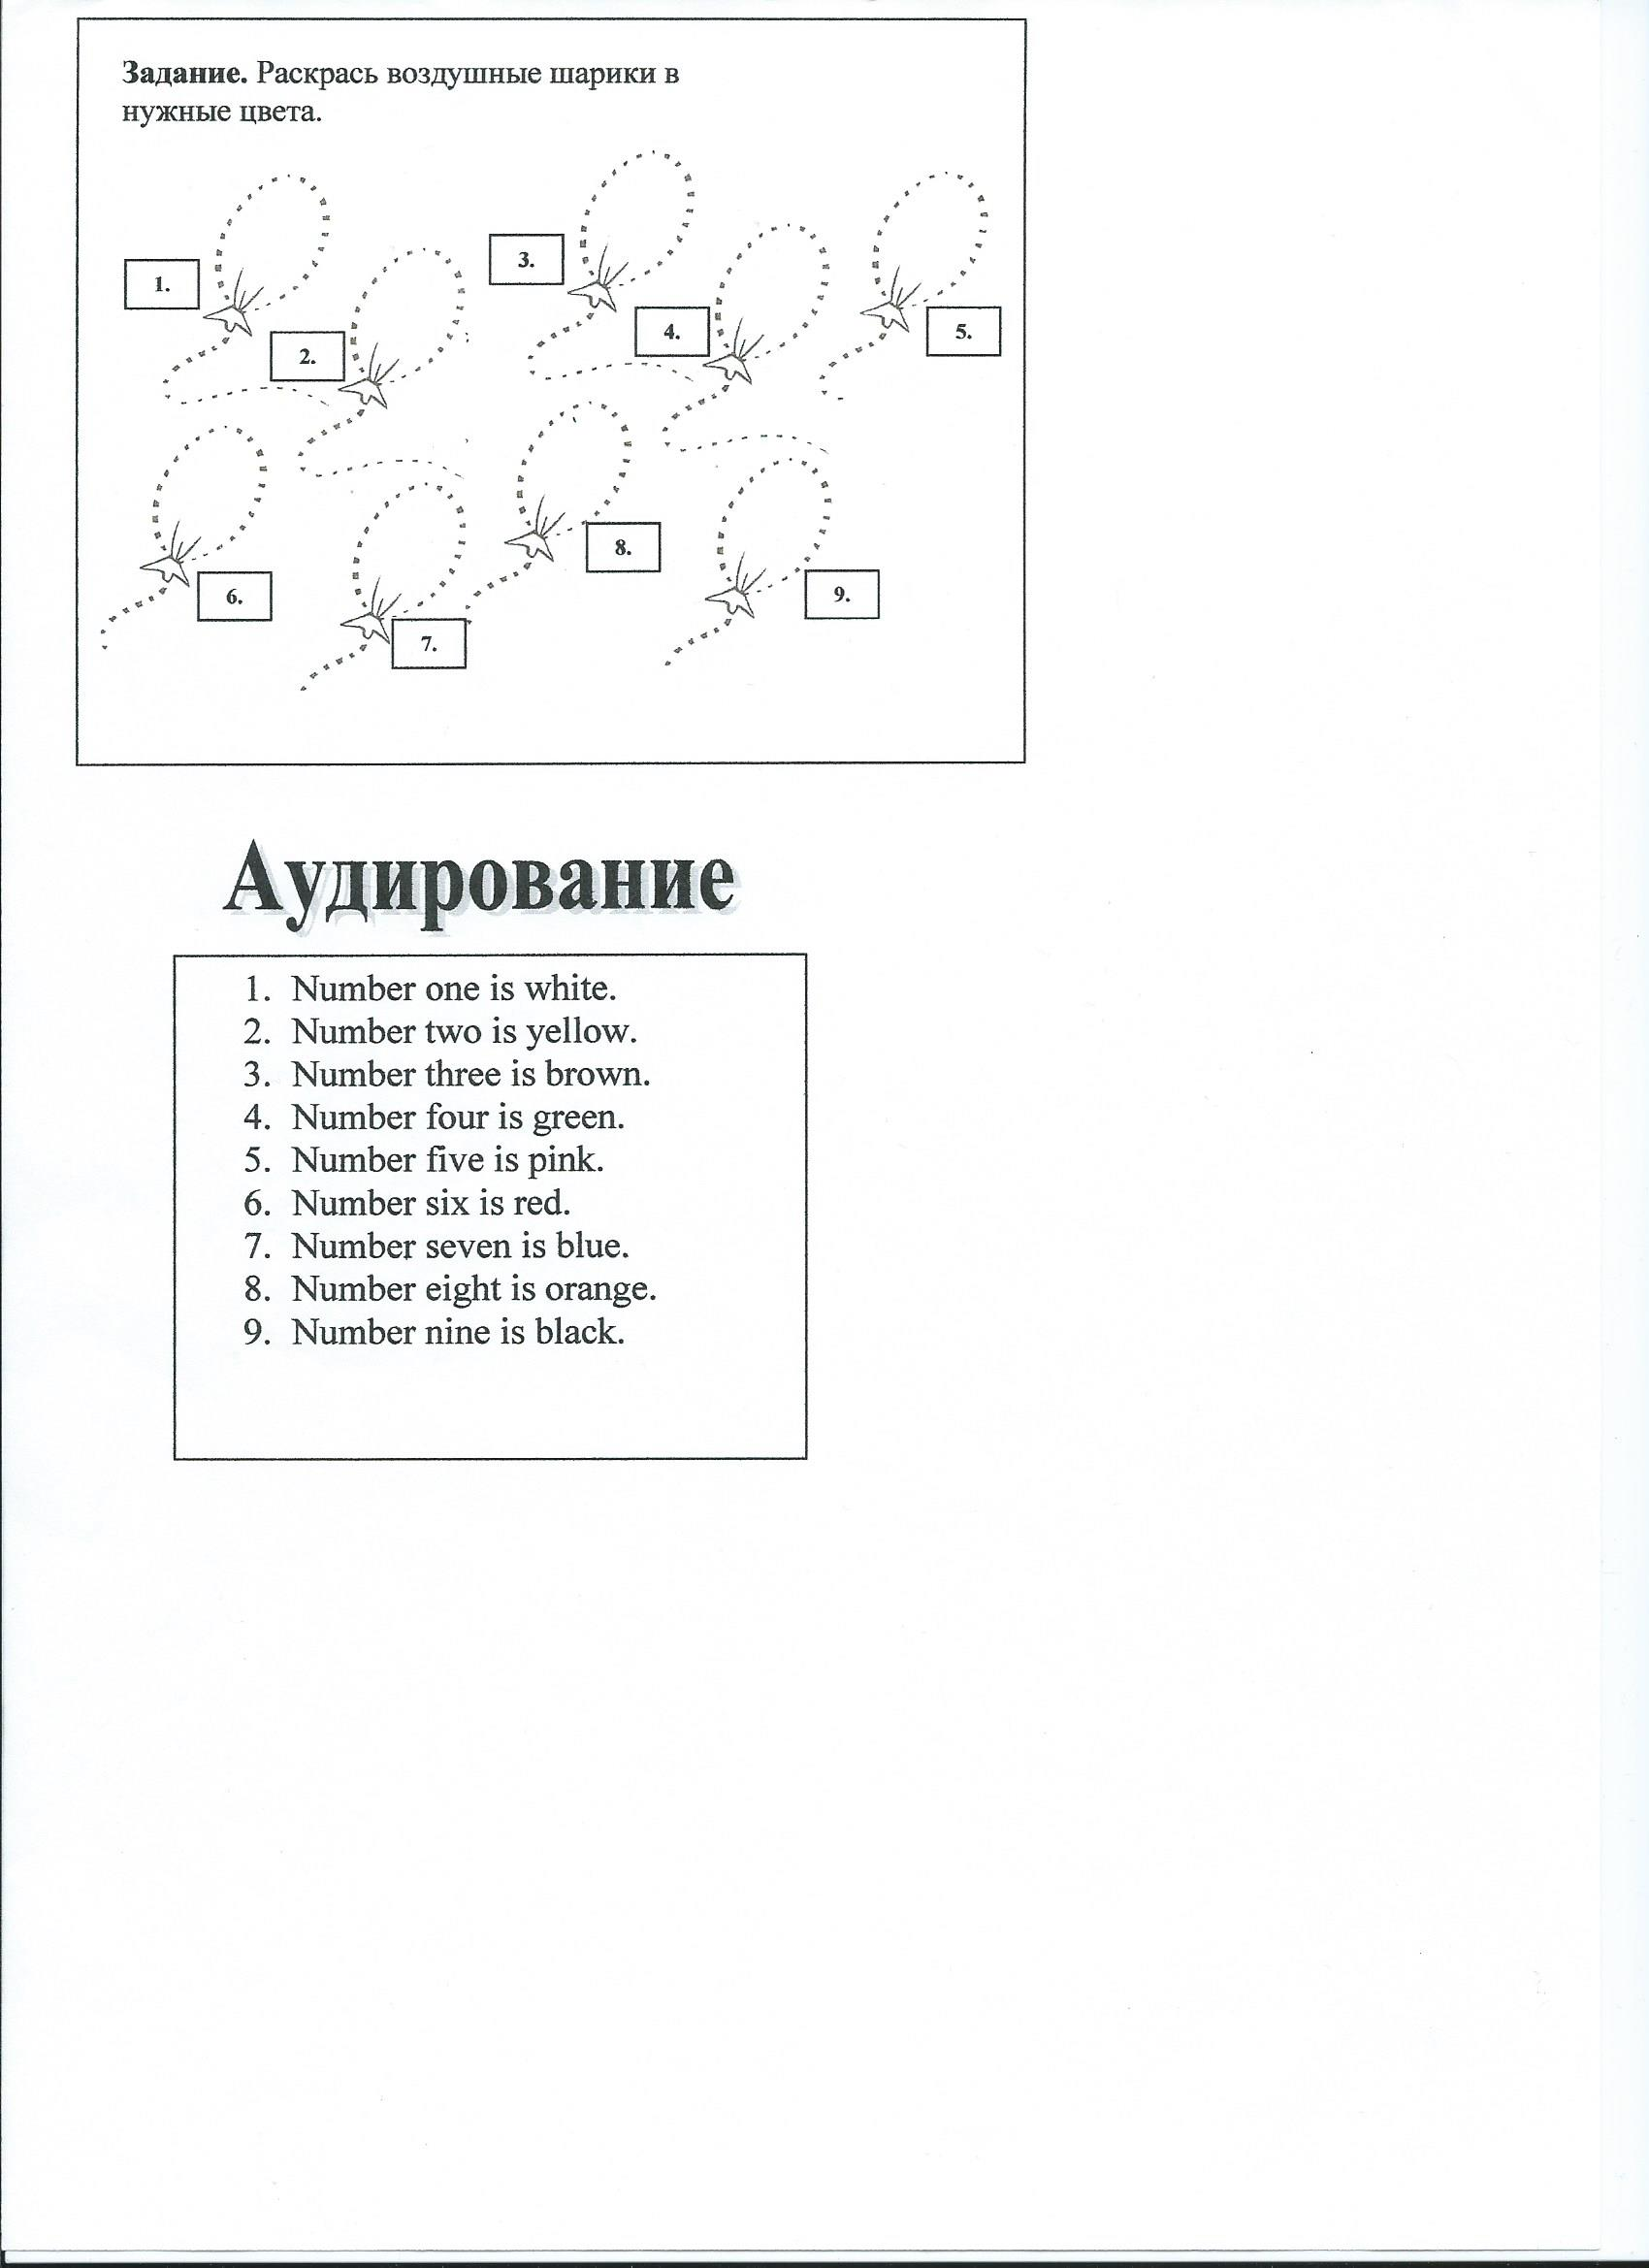 C:\Users\Бирута\Documents\Scan0073.jpg